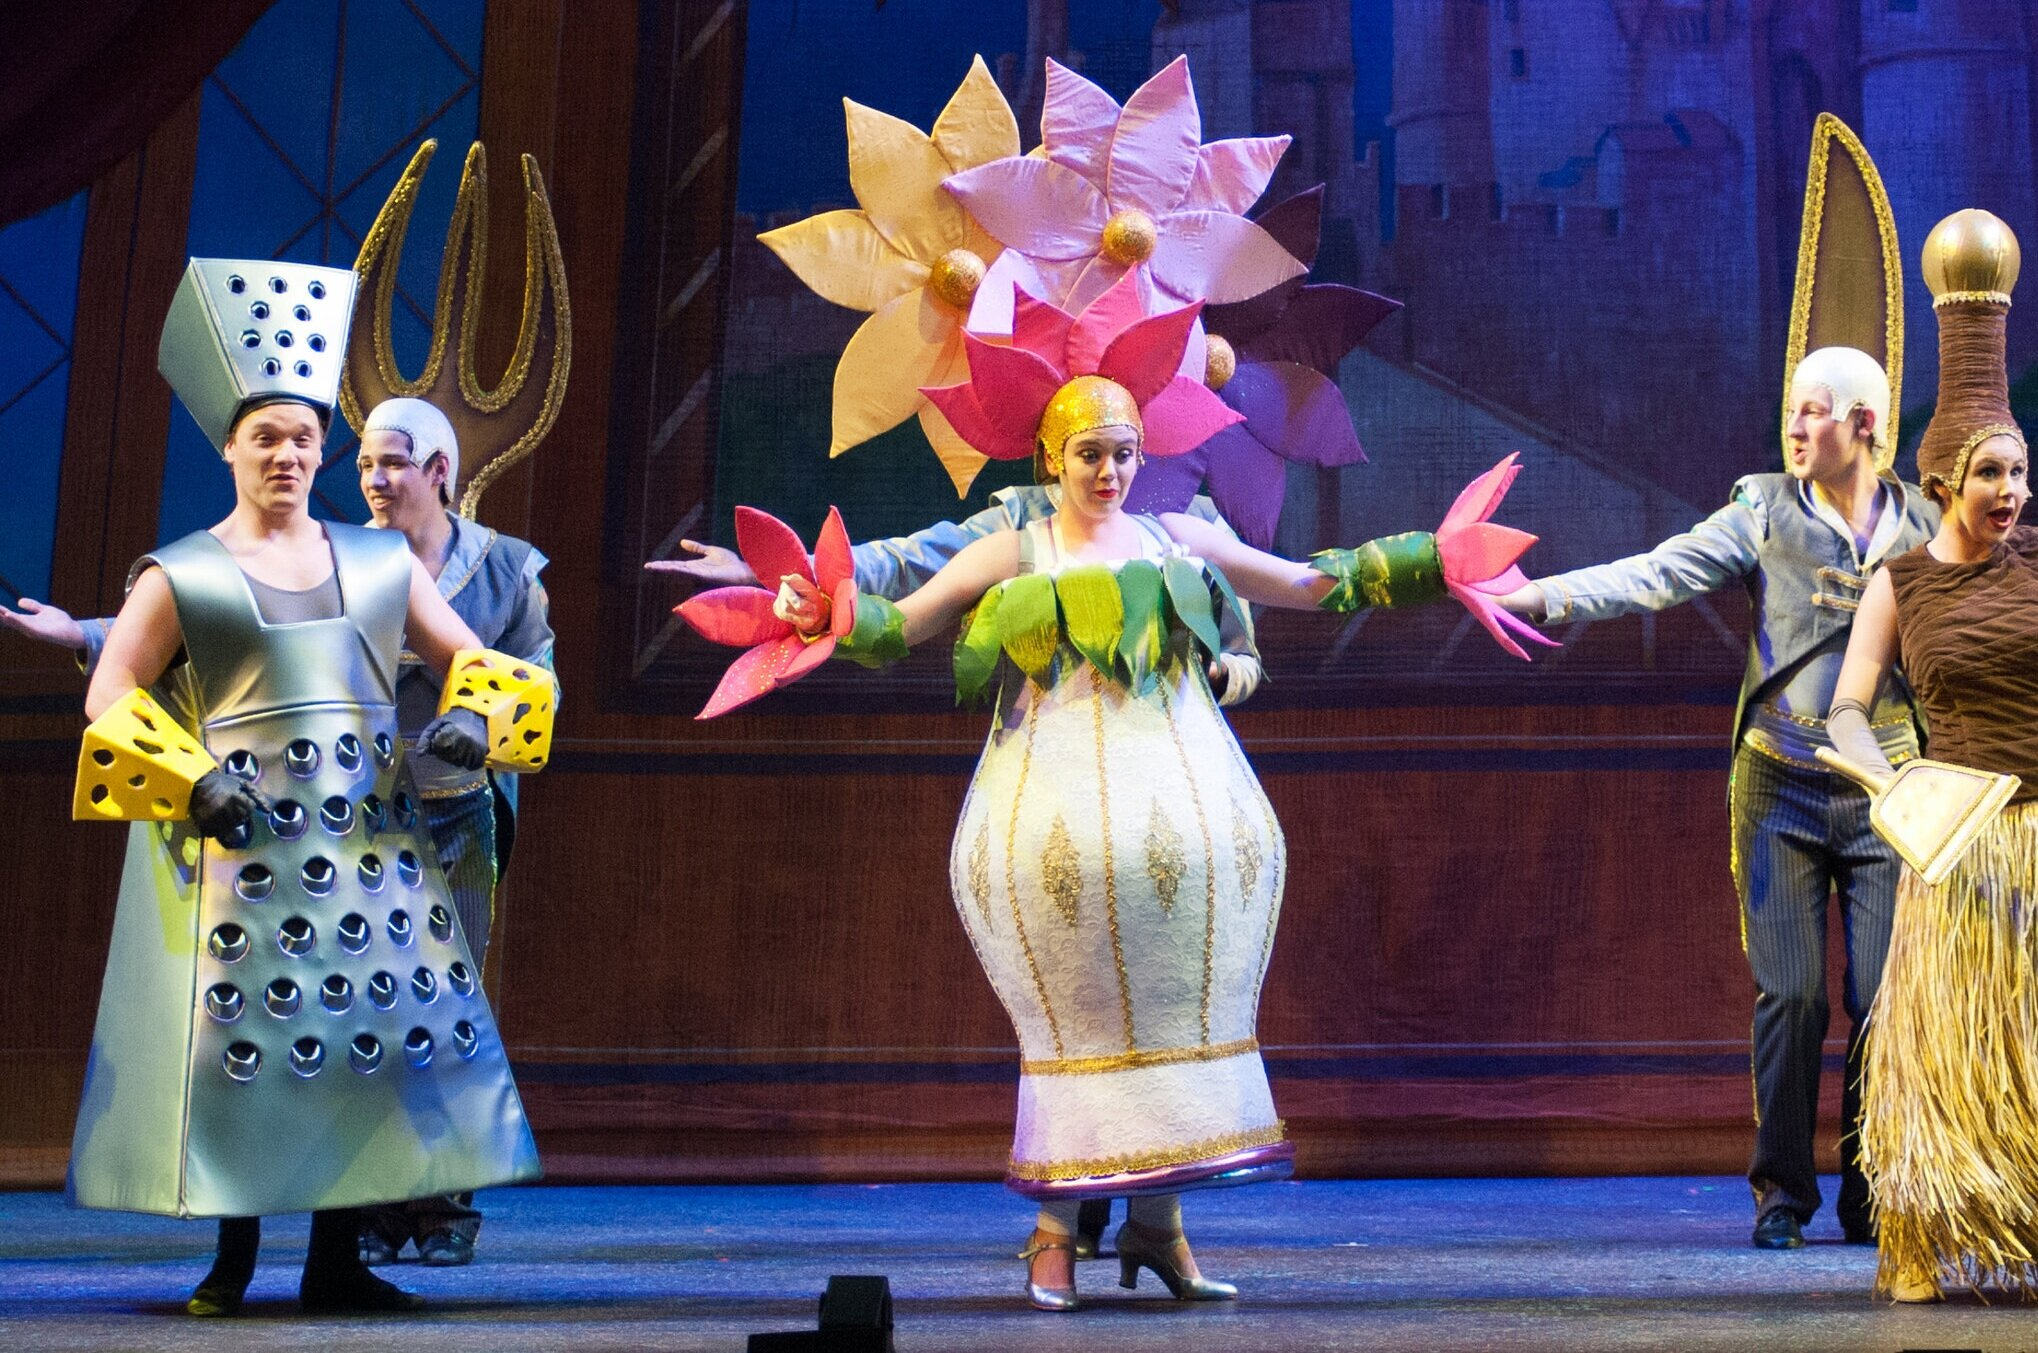 Cheese Grater and Flowers for Vase- Beauty and the Beast-  Music Theatre Wichita 2016  Costume Design by Tiia Torchia Lager. All other designs by the seasonal staff of MTW. Photos Courtesy of Jerry Fritchman and Christopher Clark.